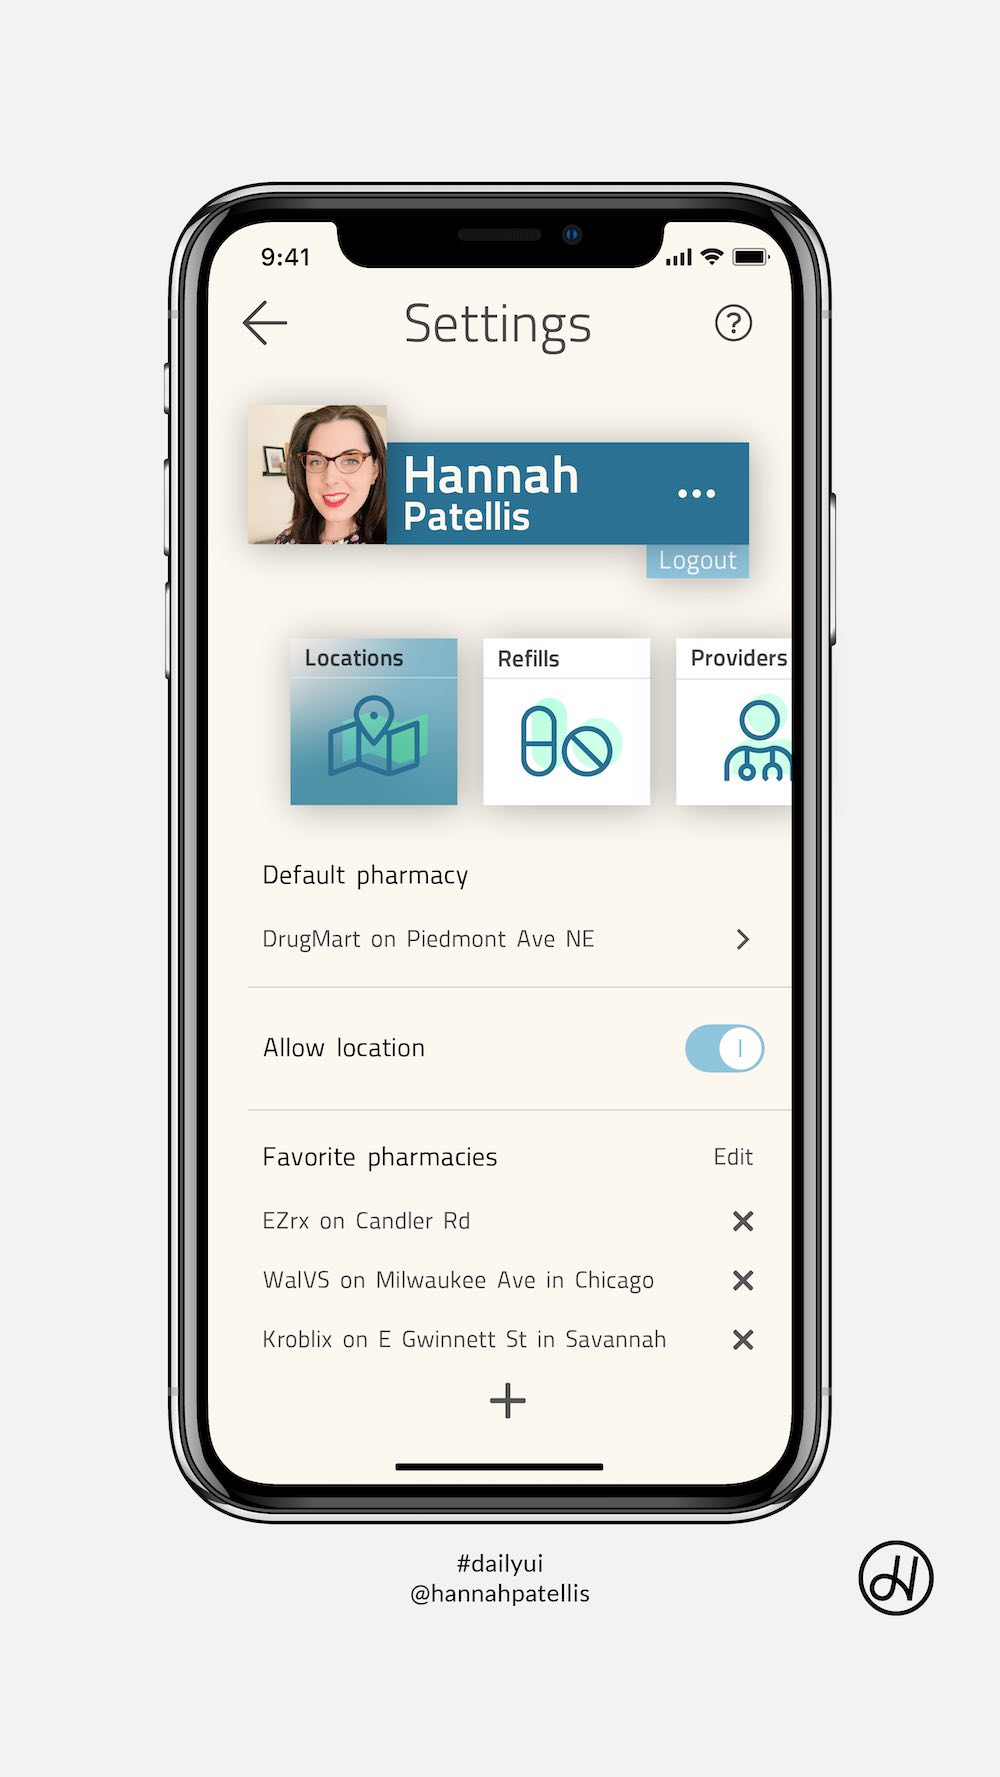 Settings screen user interface design for a pharmacy application on iOS